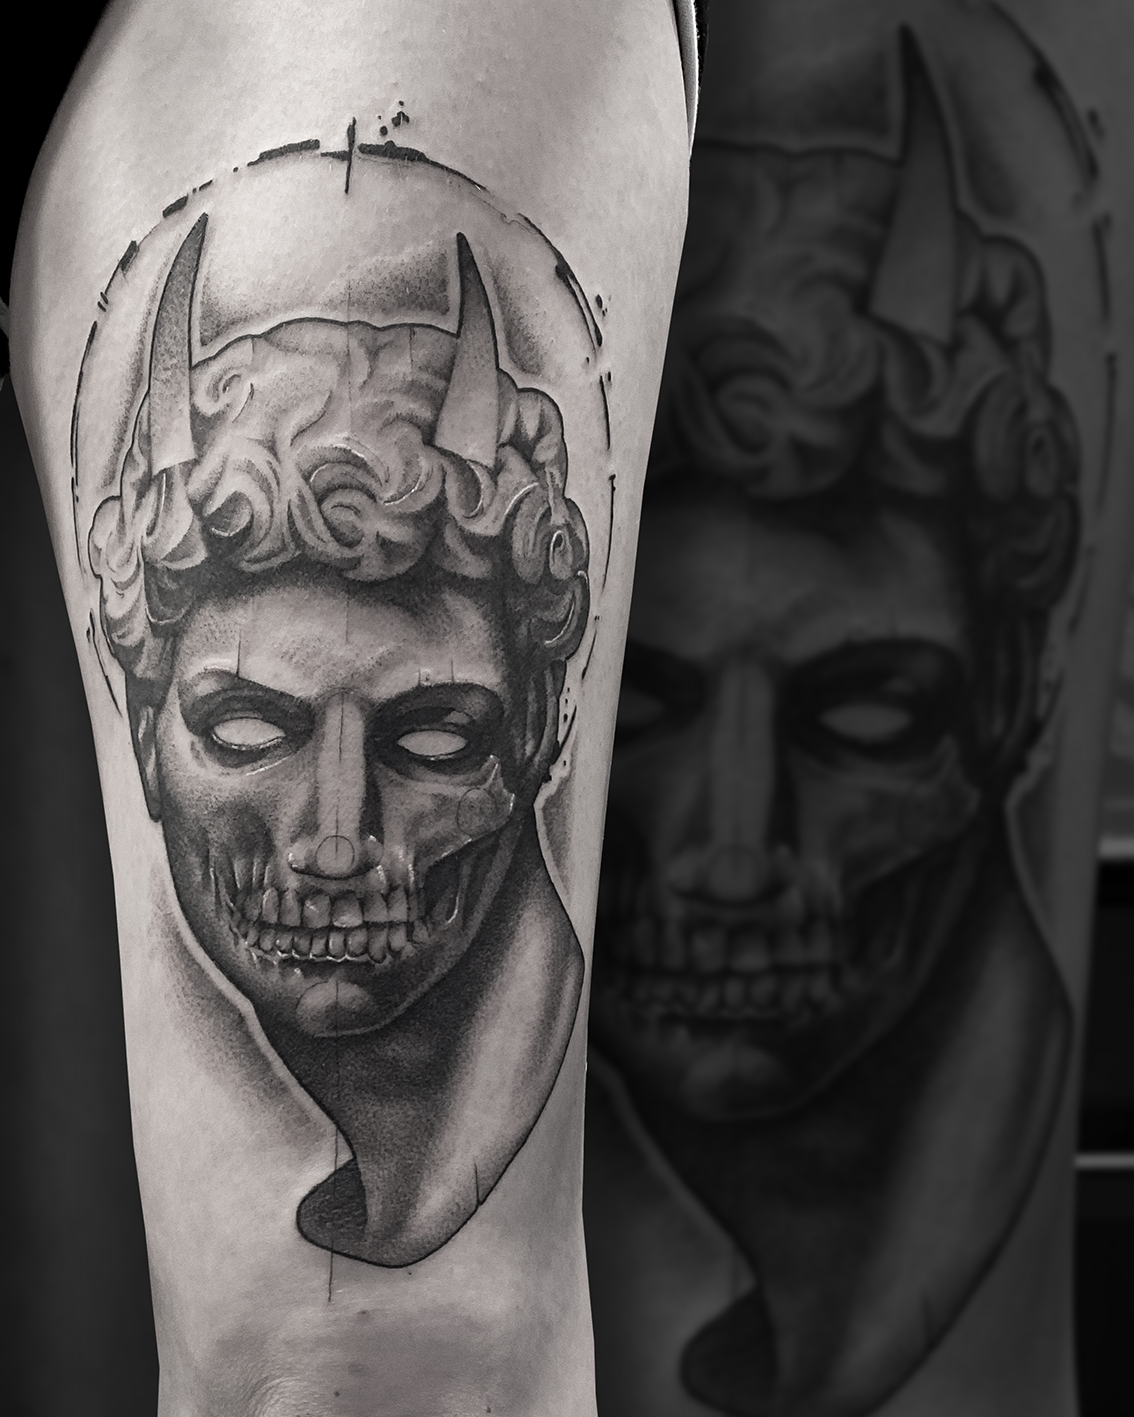 Tattoo Zincik - Statue devil 001